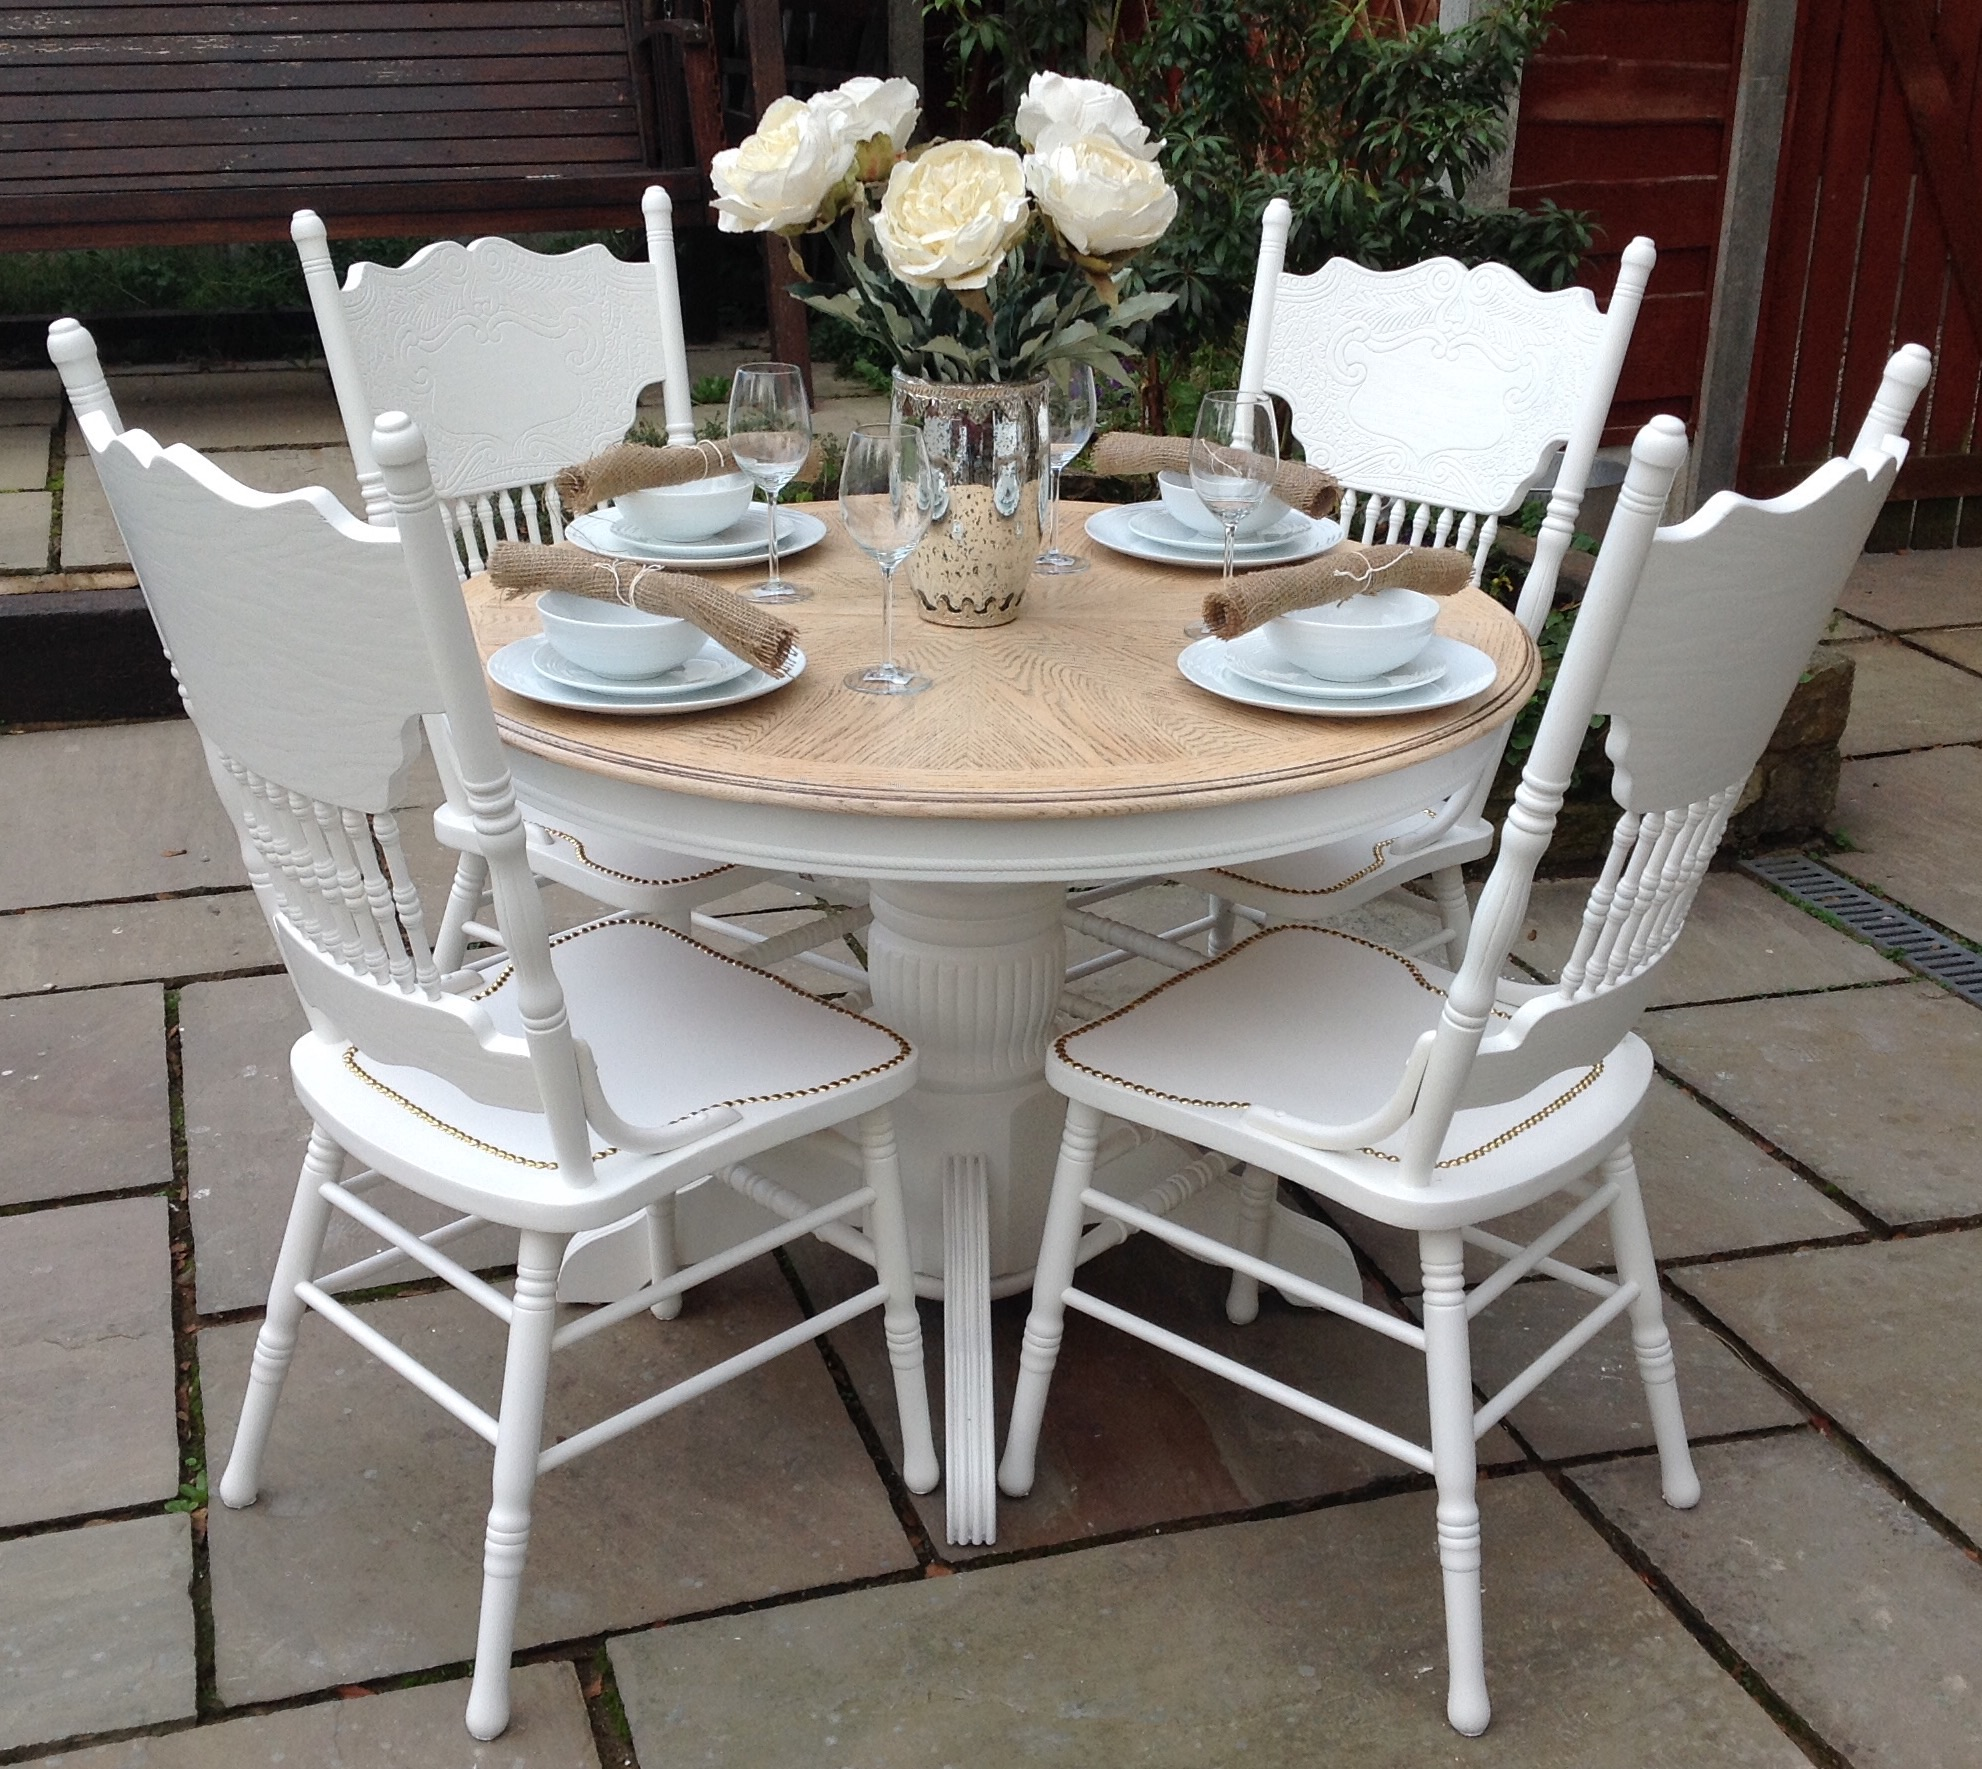 top 50 shabby chic round dining table and chairs home decor ideas uk. Black Bedroom Furniture Sets. Home Design Ideas